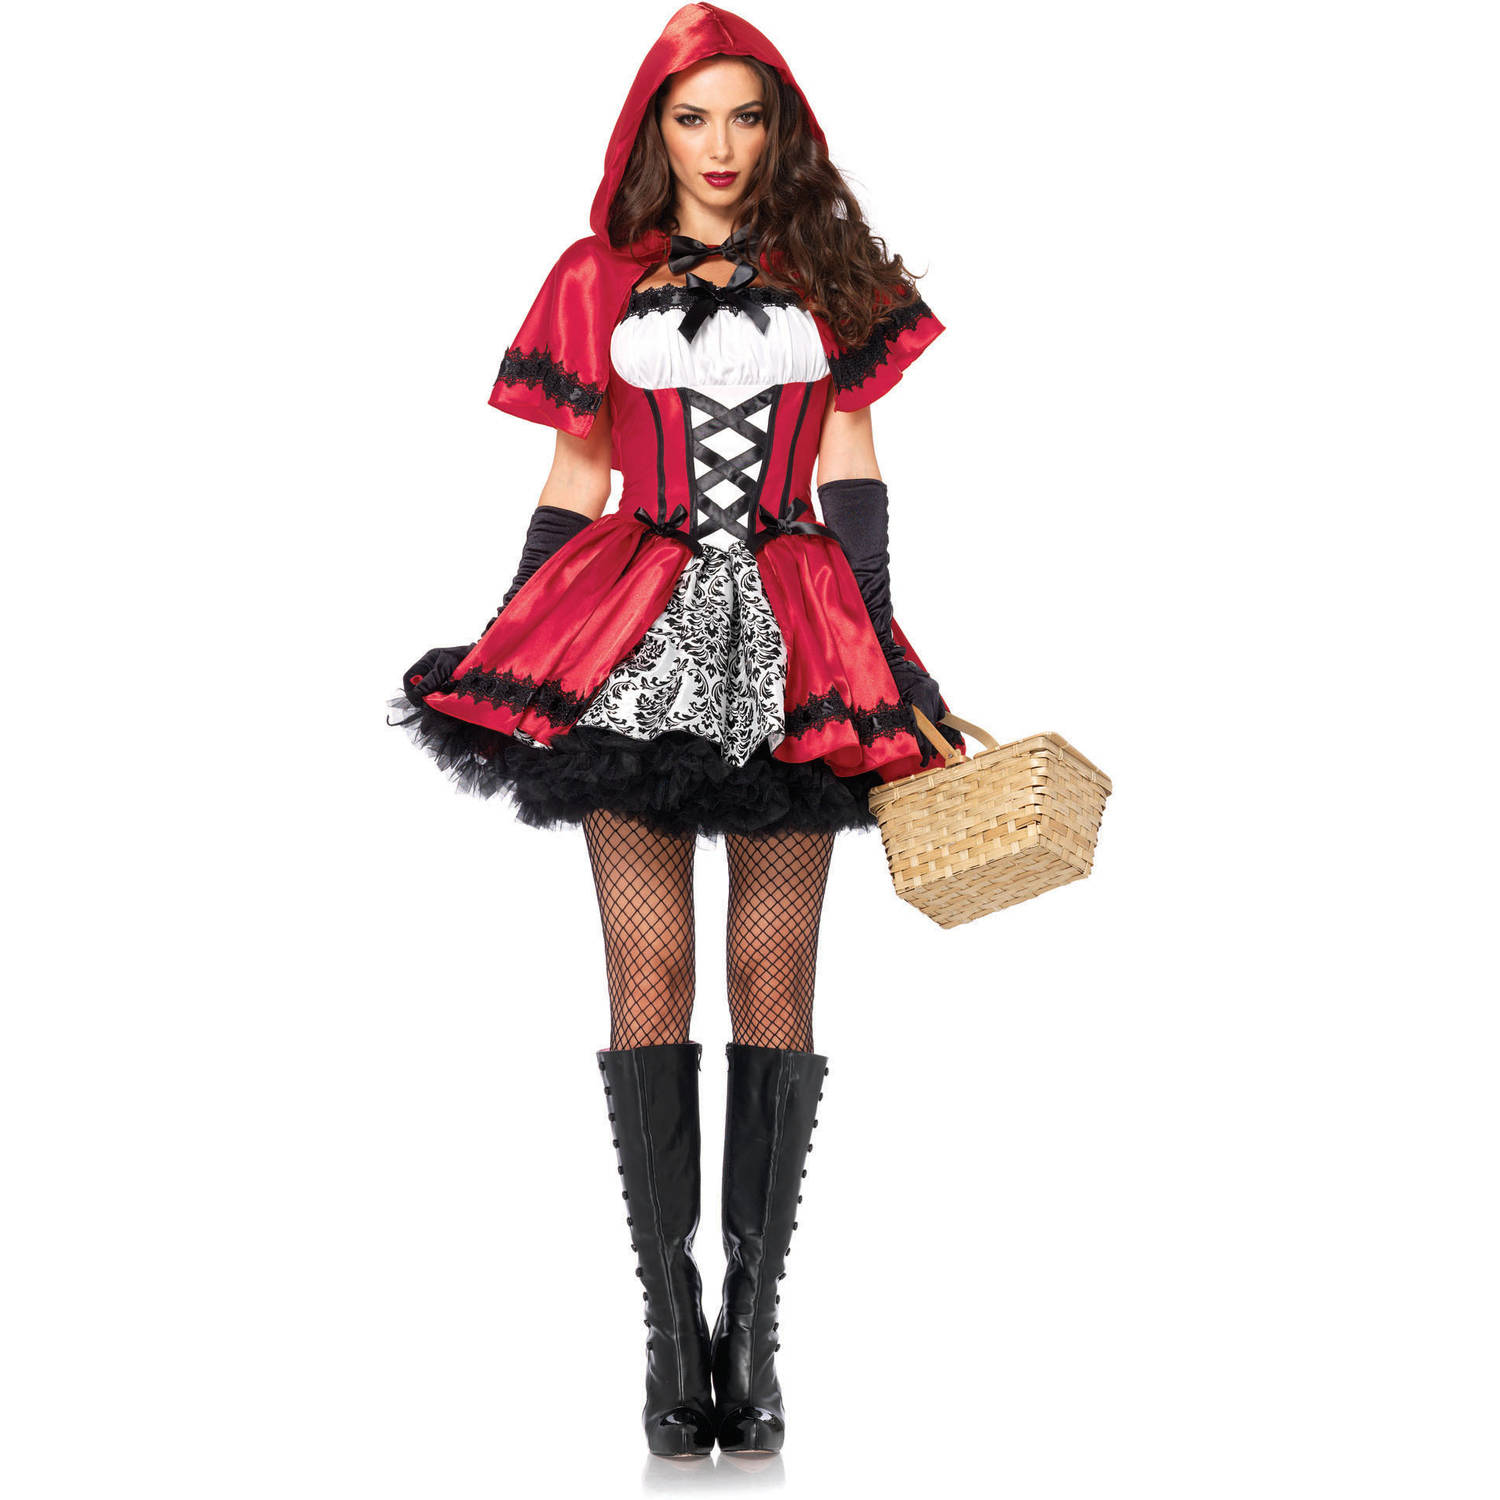 Leg Avenue Gothic Red Riding Hood Adult Halloween Costume